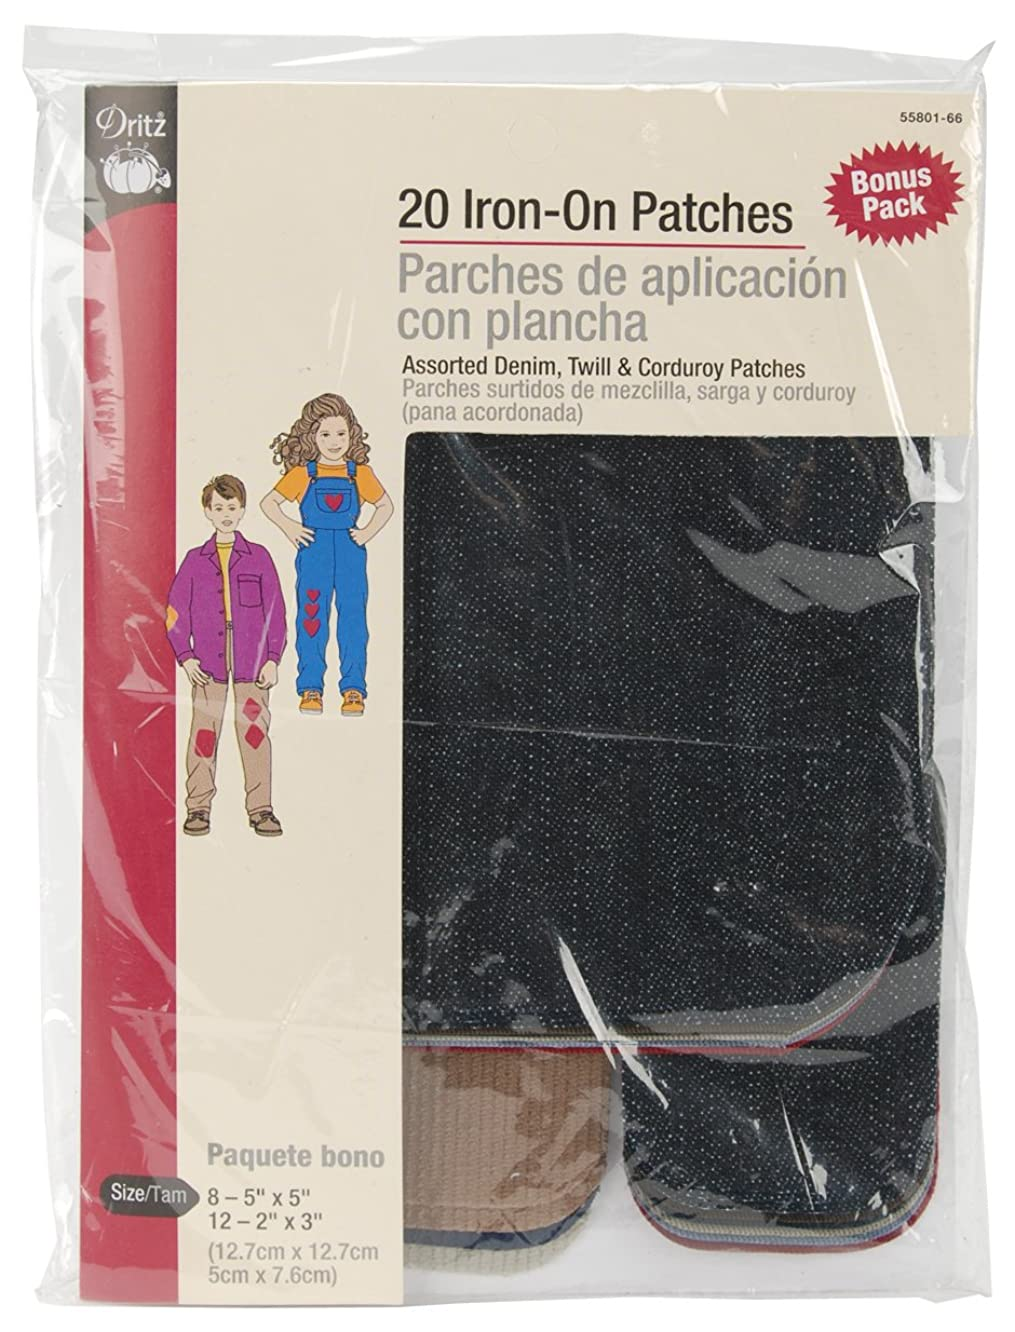 Dritz 55801-66 Patches, Iron-On, Denim, Twill & Corduroy, Assorted Colors & Sizes (20-Count)